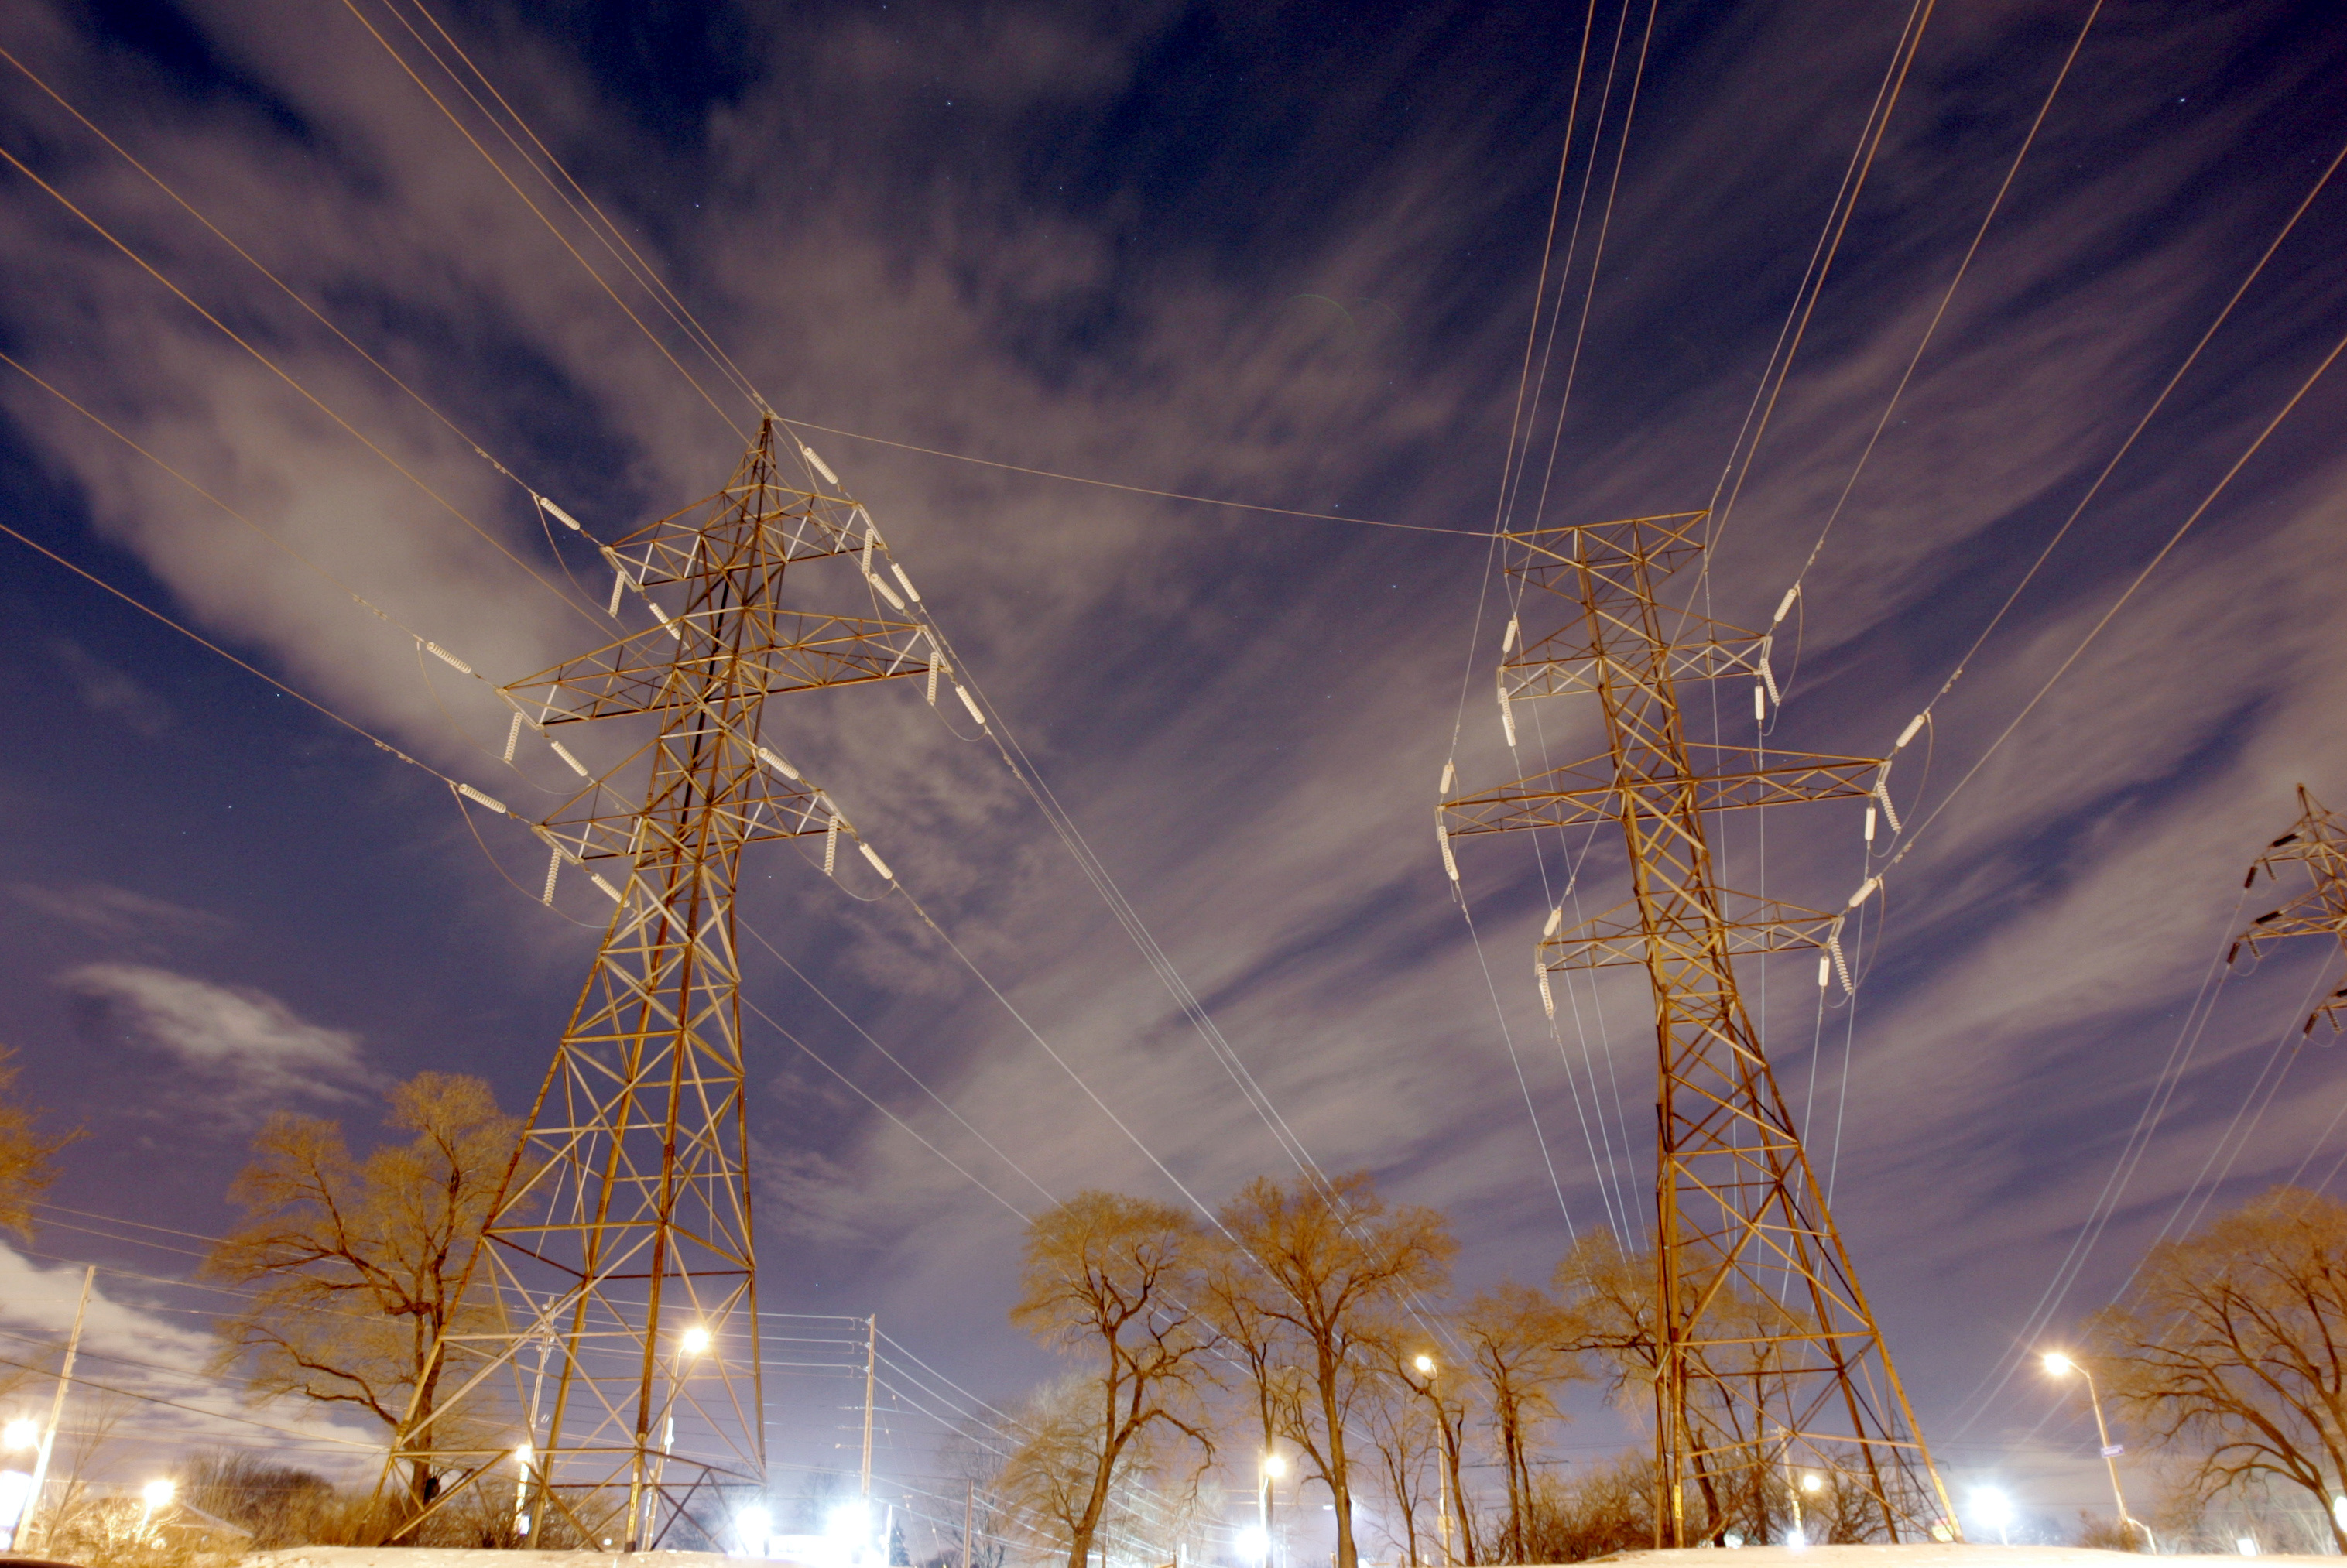 High voltage electrical power transmission lines are photographed at night in Toronto, February 9, 2007.     REUTERS/J.P. Moczulski (CANADA)/File Photo